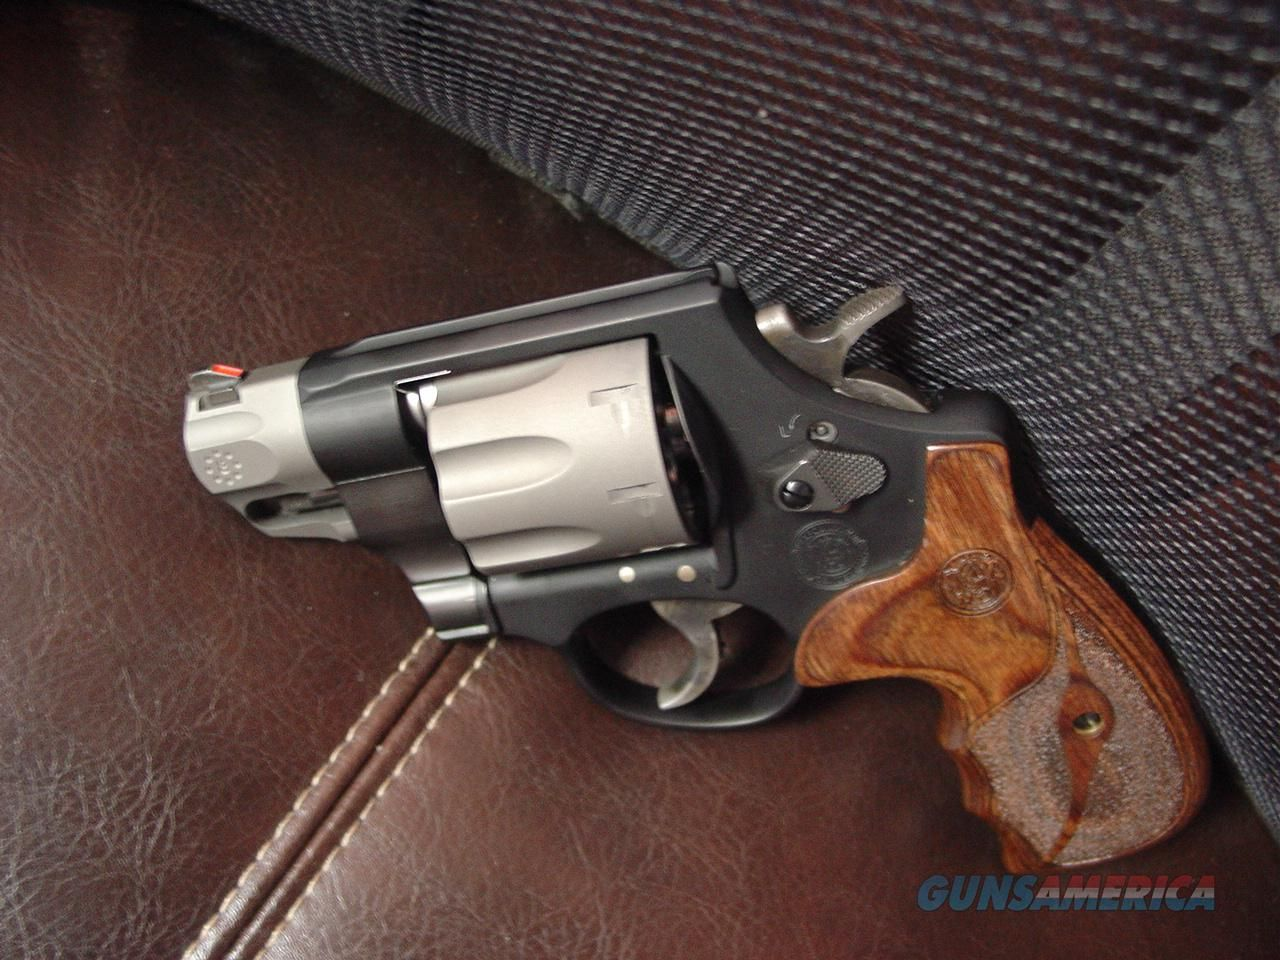 Smith & Wesson Model M 327 .357 magnum 8 shots. Super light ...